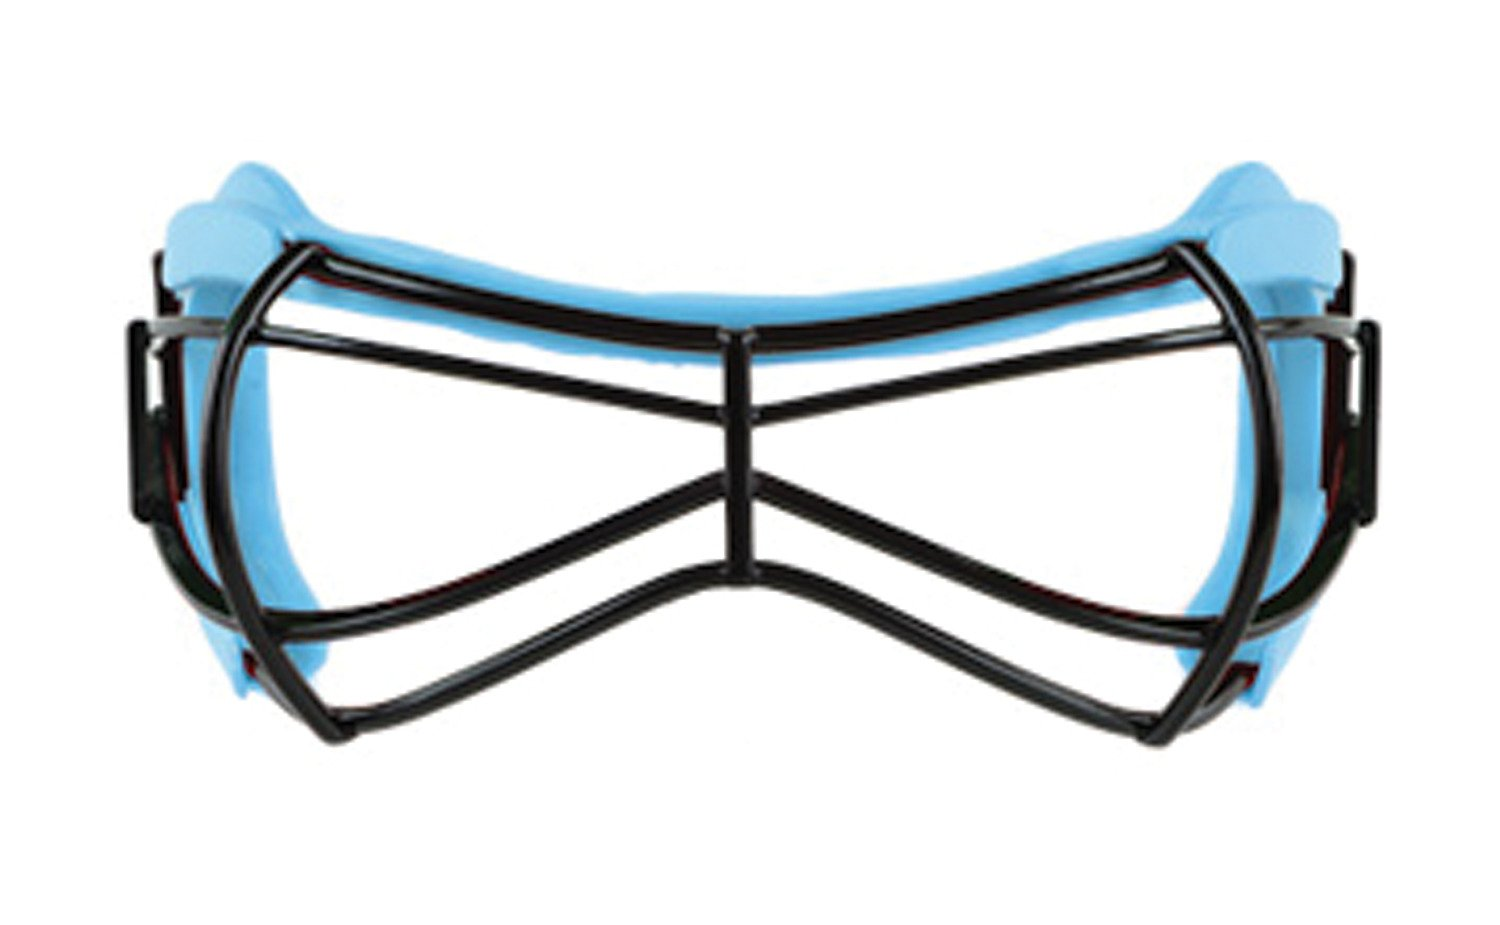 2a3d86ef07 Under Armour Women s Illusion 2 Lacrosse Goggles